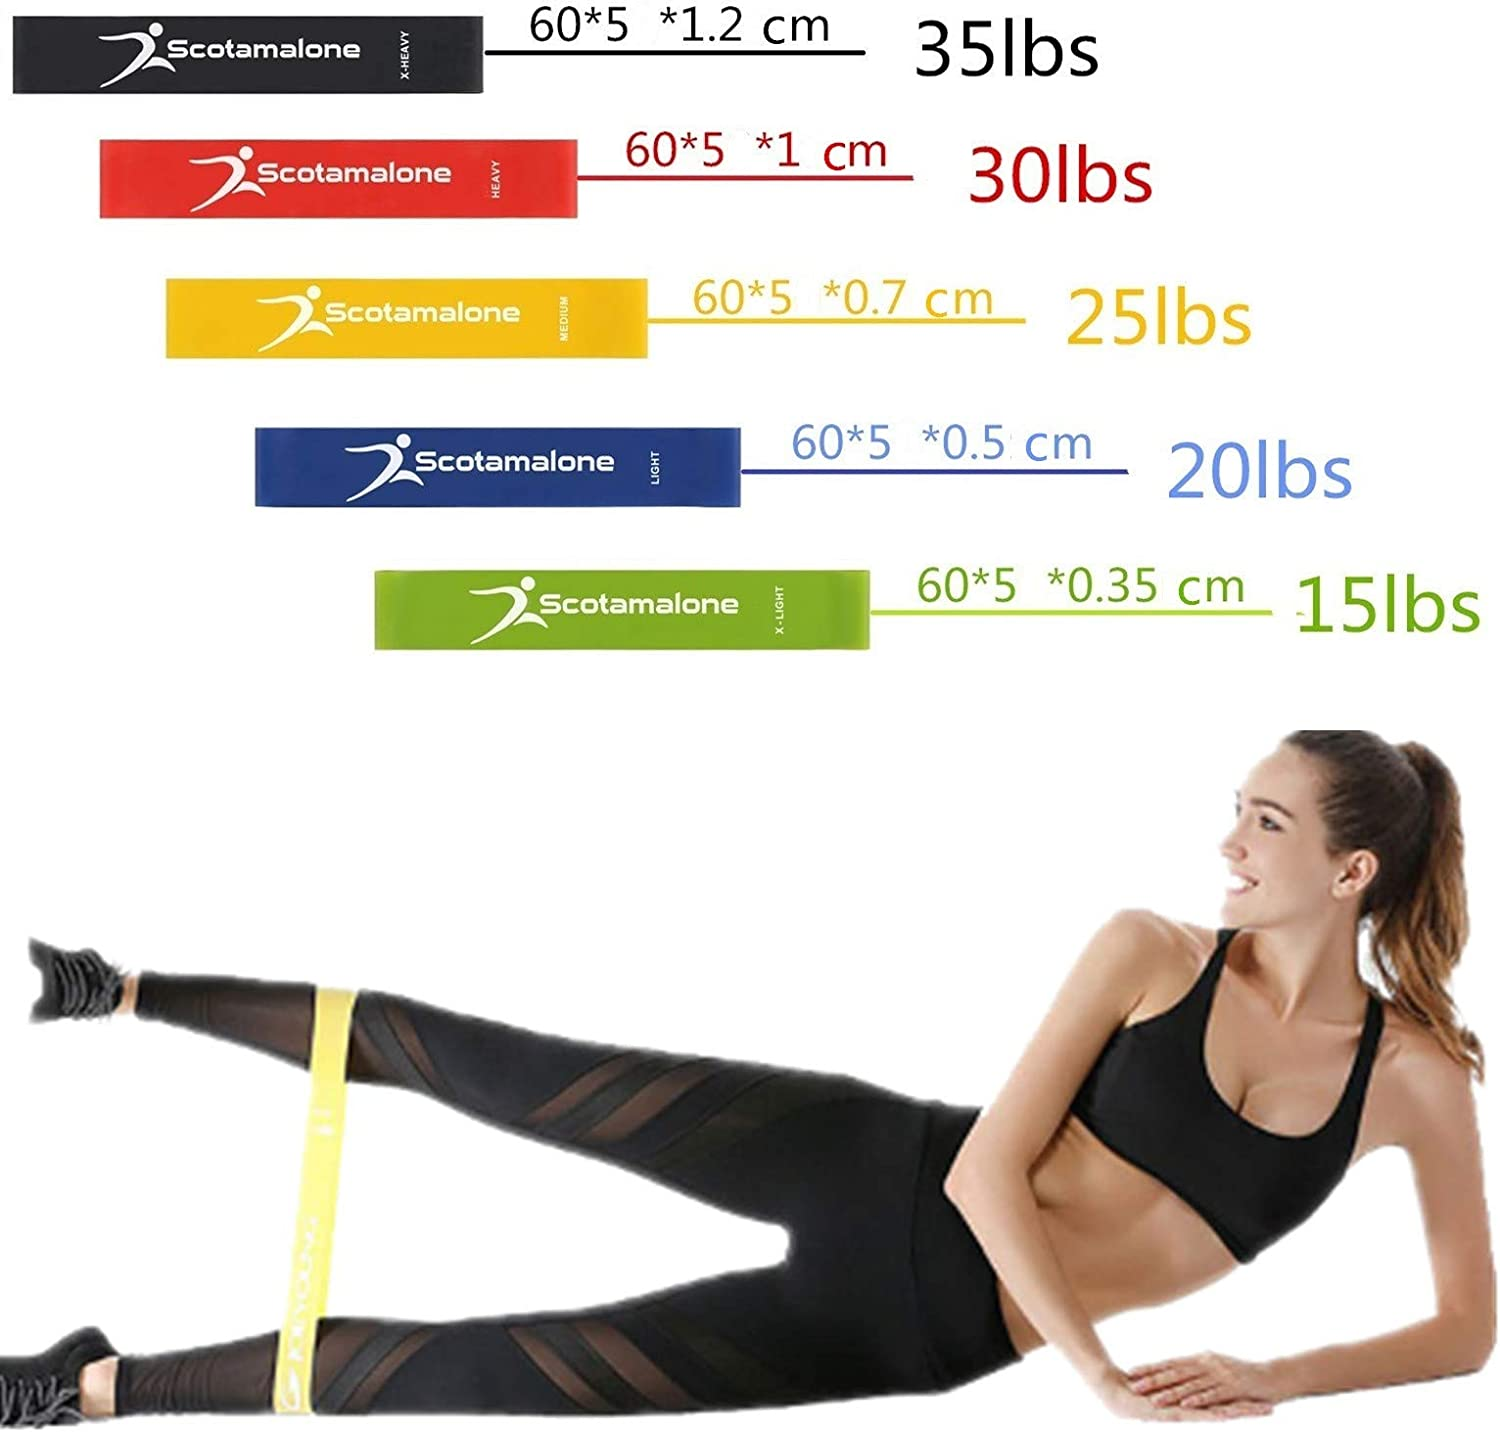 Scotamalone Exercise Resistance Loop Bands Fitness Bands Workout Bands Stretch Bands Loop kit for Legs Butt Pilates Glutes Yoga Crossfit Fitness Physical Therapy Home Equipment Training for Women Men